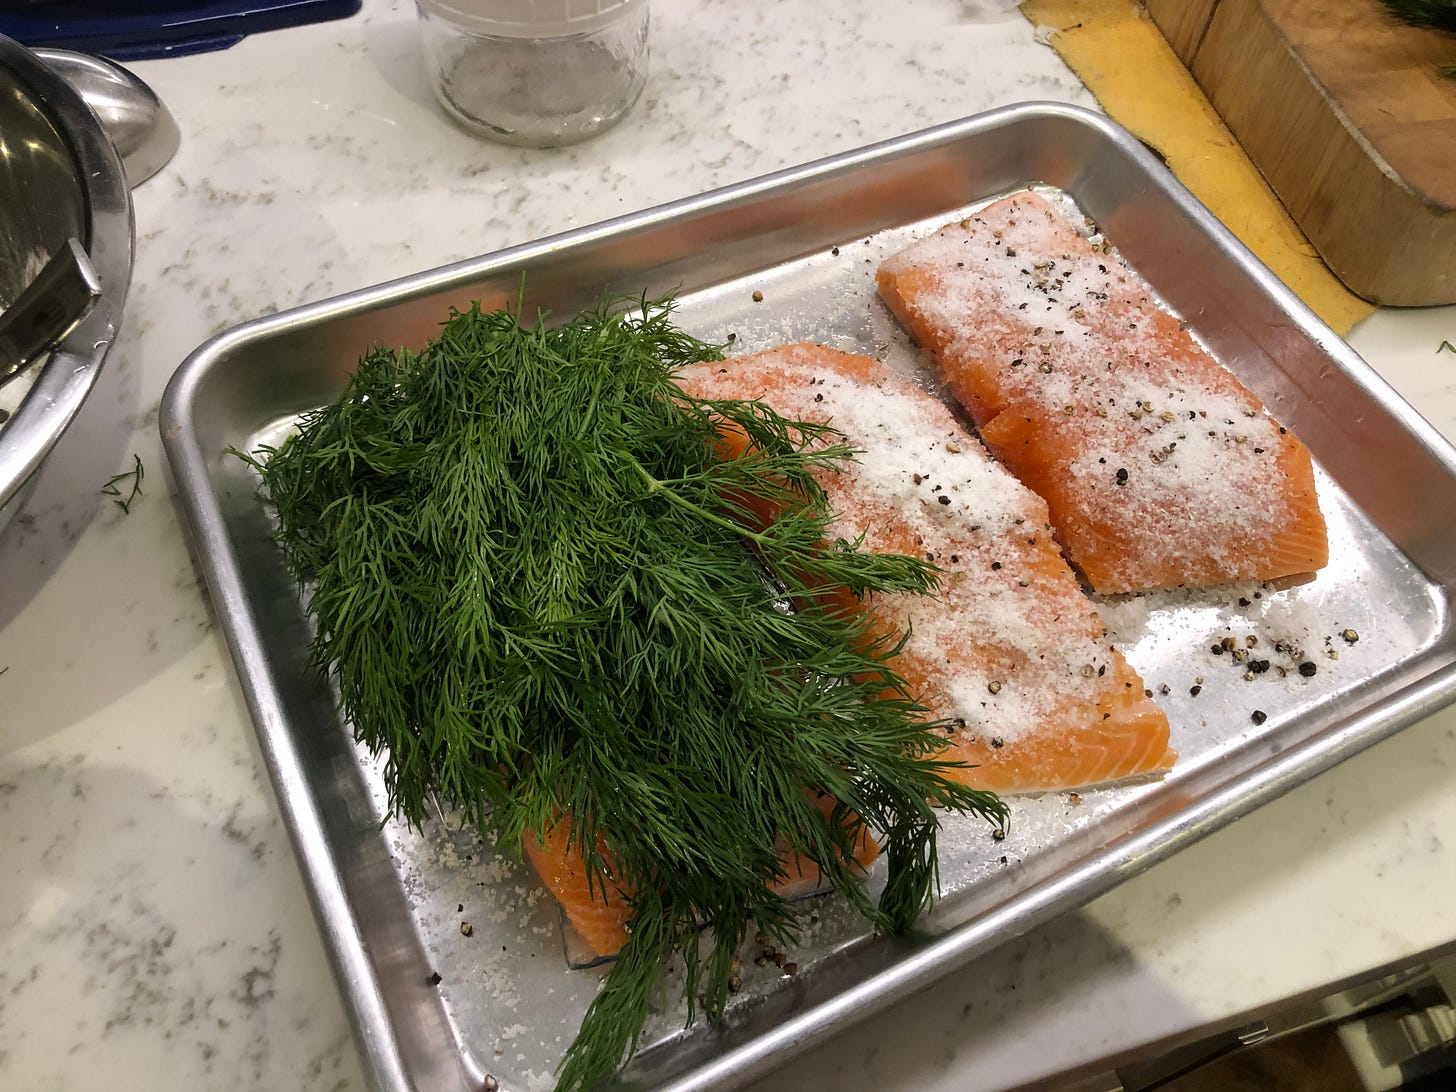 The salmon pieces, covered in the cure. One piece also has a large pile of dill on it, covering it completely.